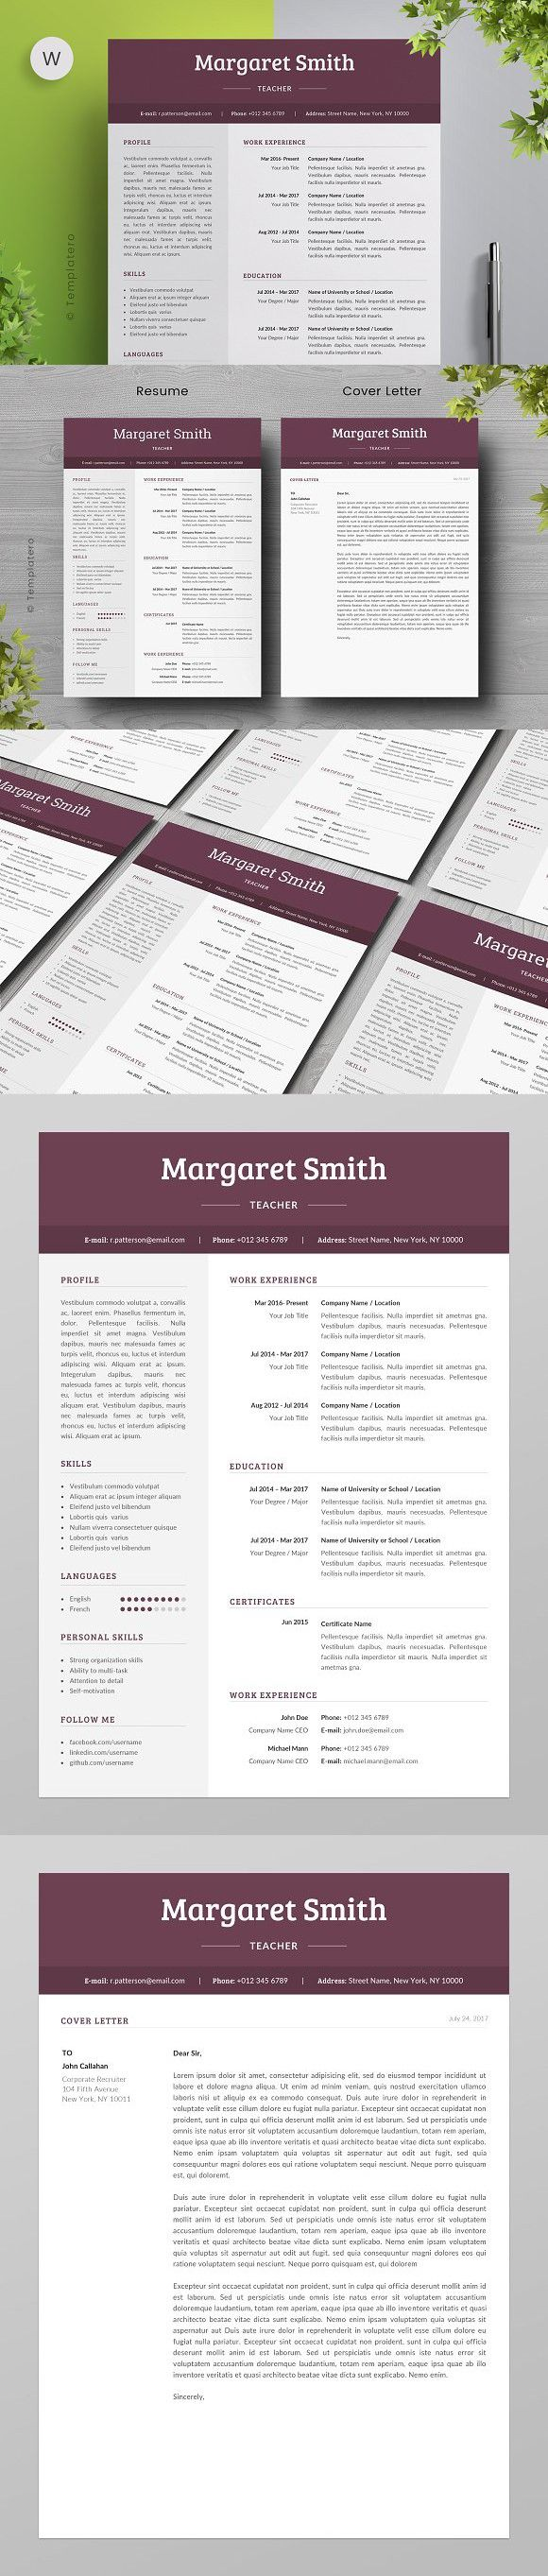 Word Cv Templates 2007%0A Resume Template   Free Cover Letter  Resume Templates